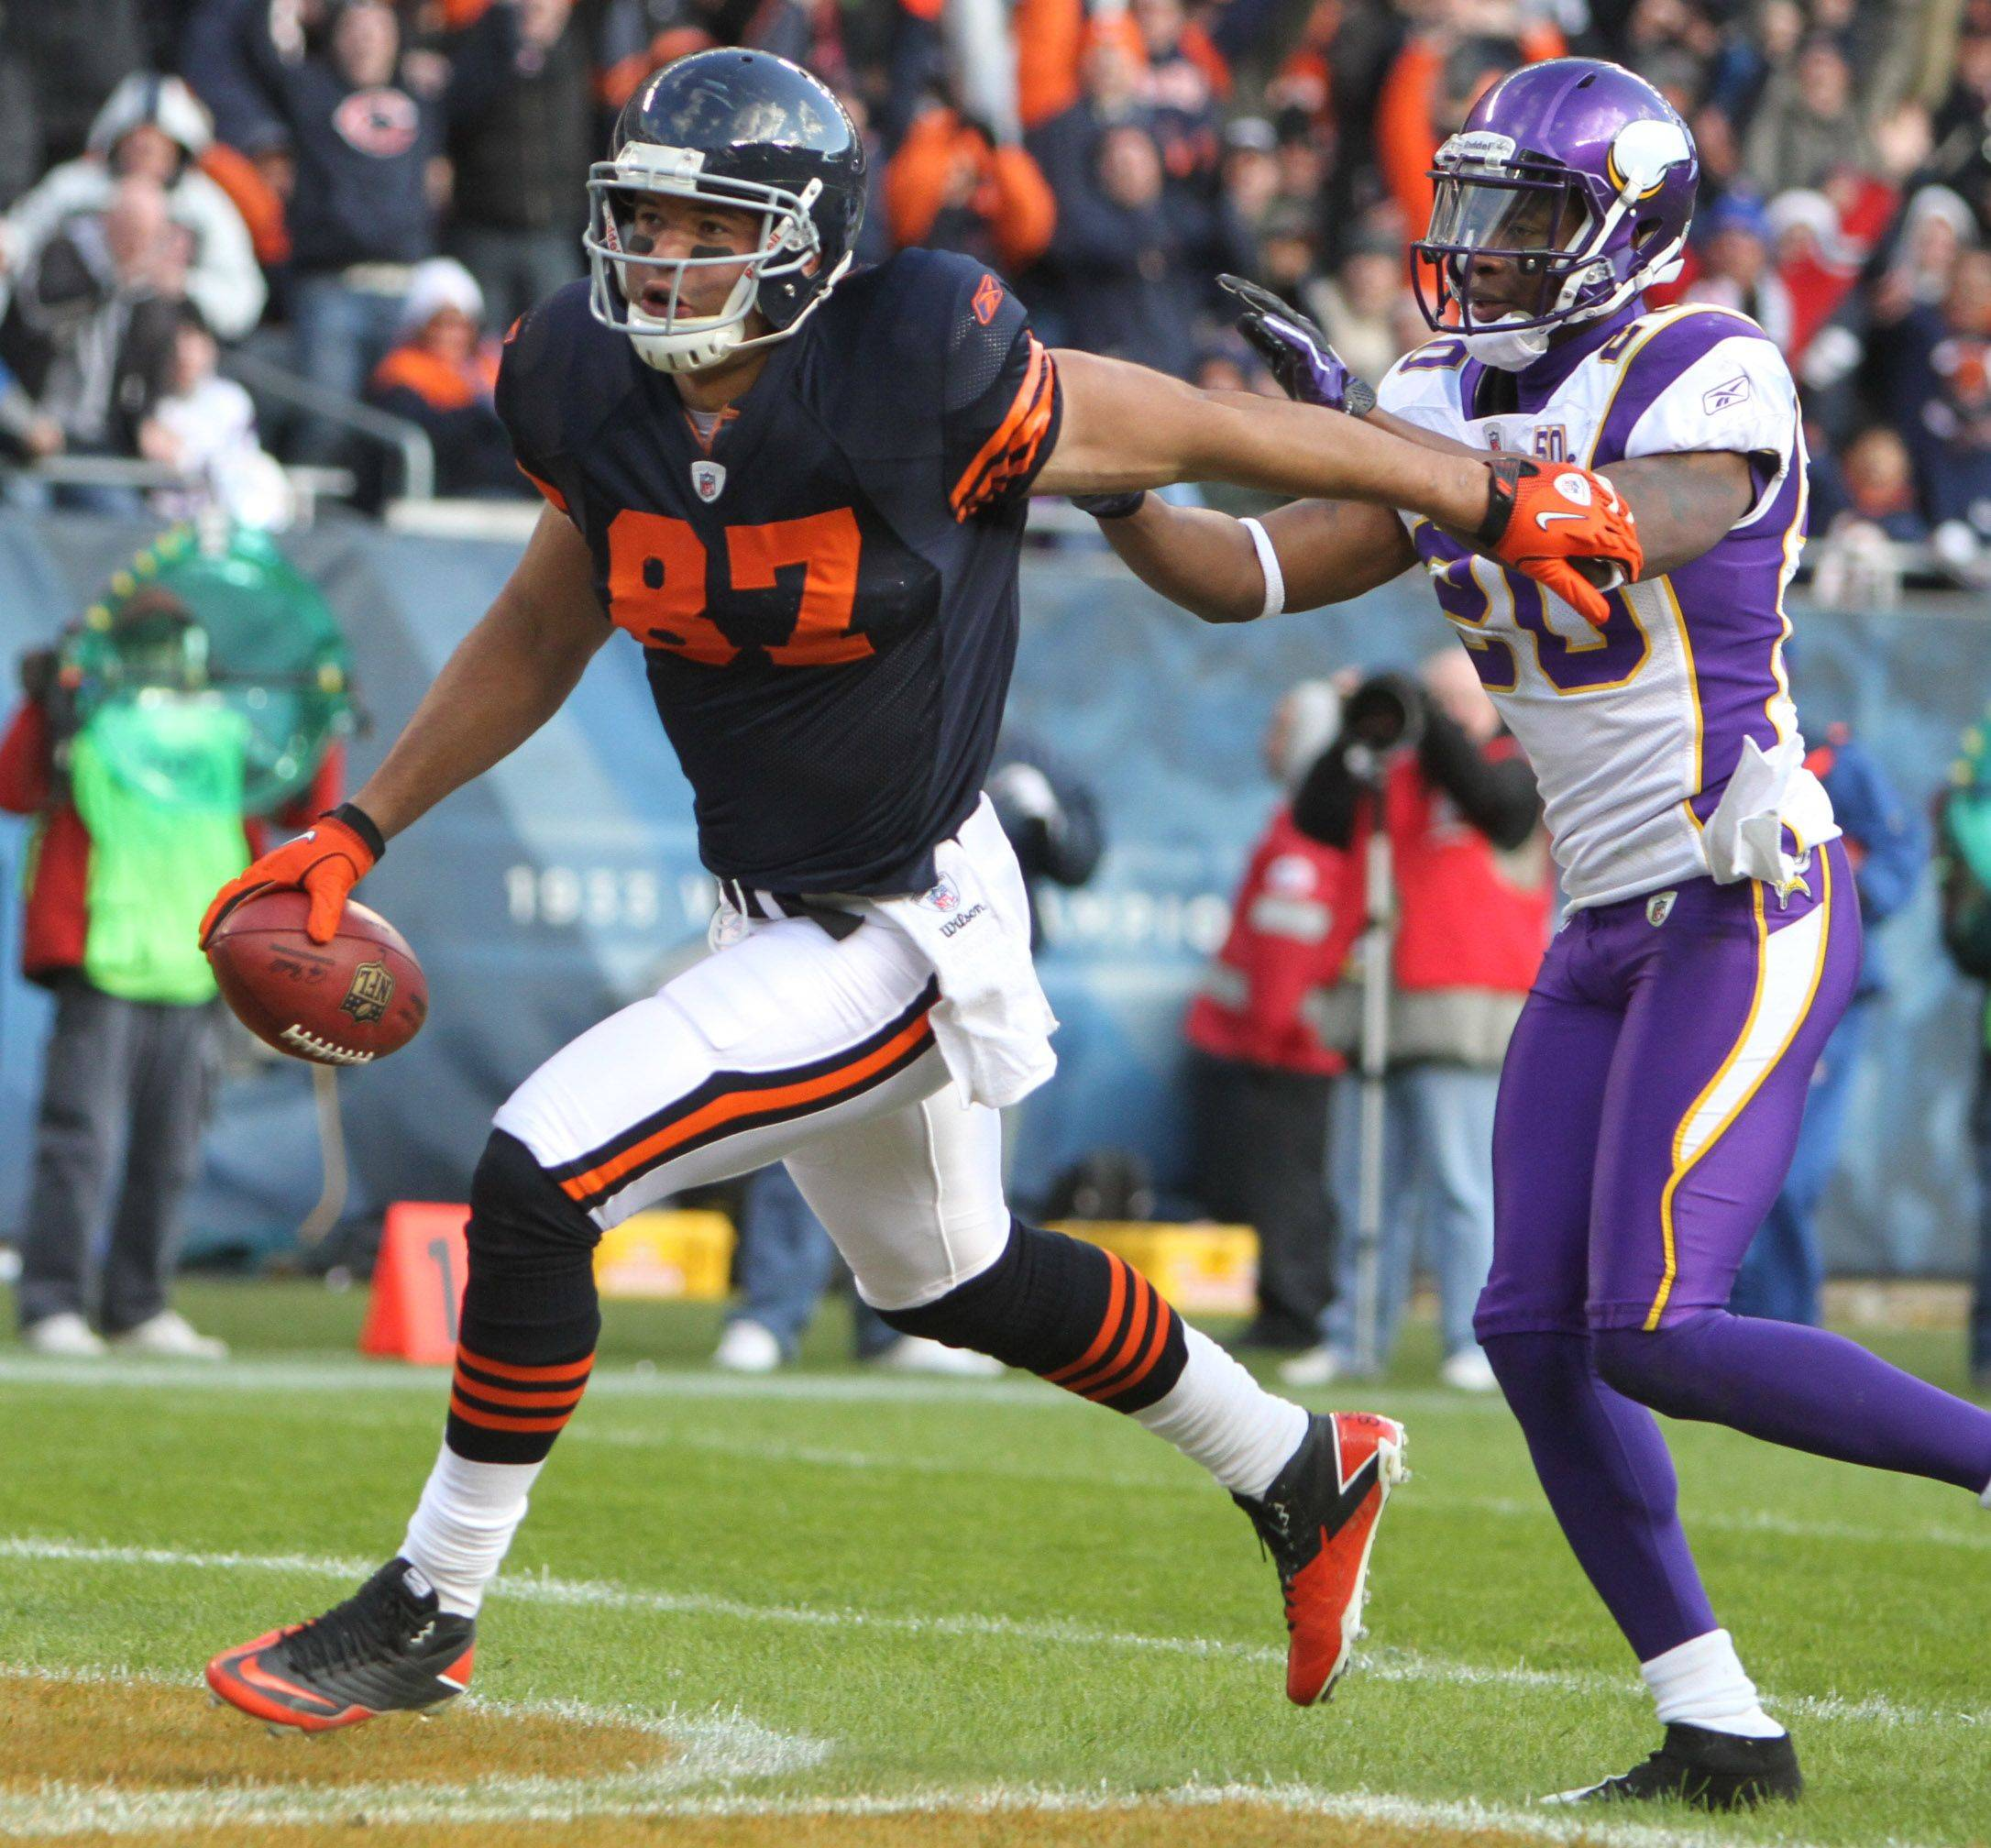 Chicago Bears' Kellen Davis scores a touchdown against Minnesota Vikings in the second half.